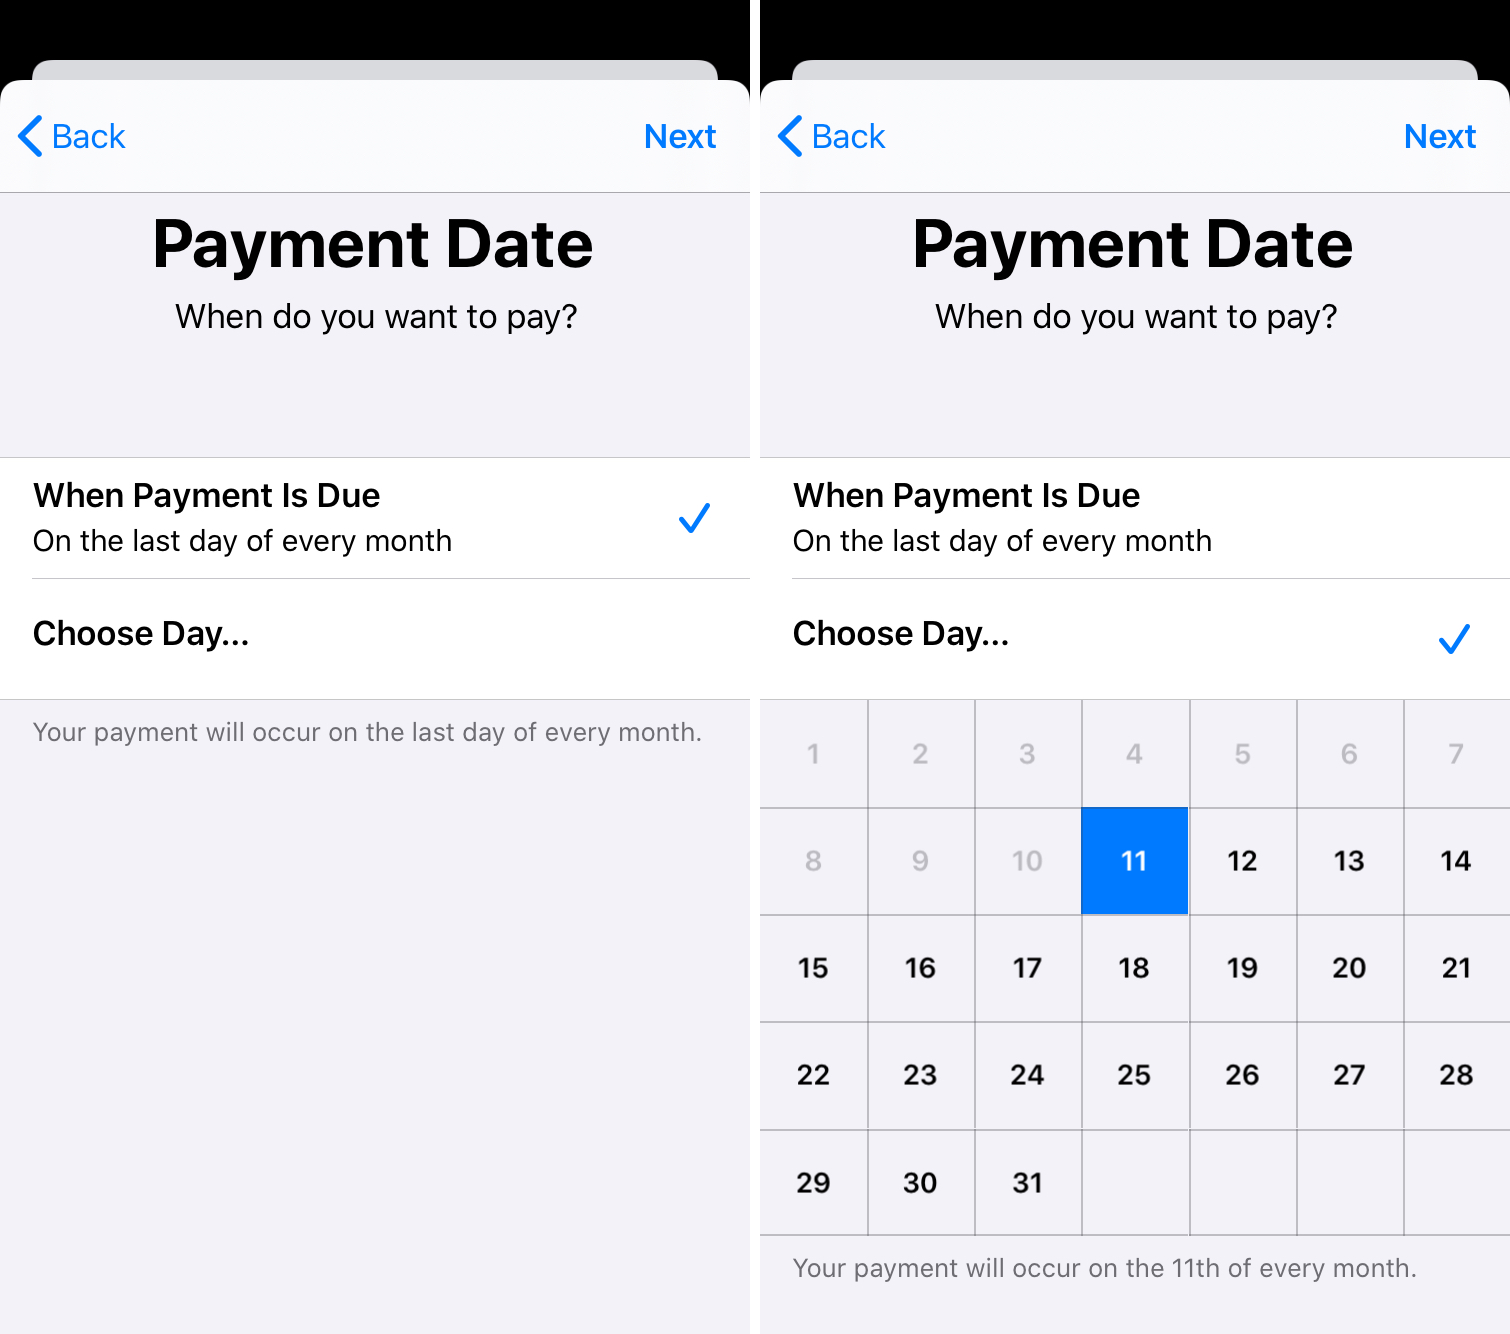 Payment Date for Apple Card